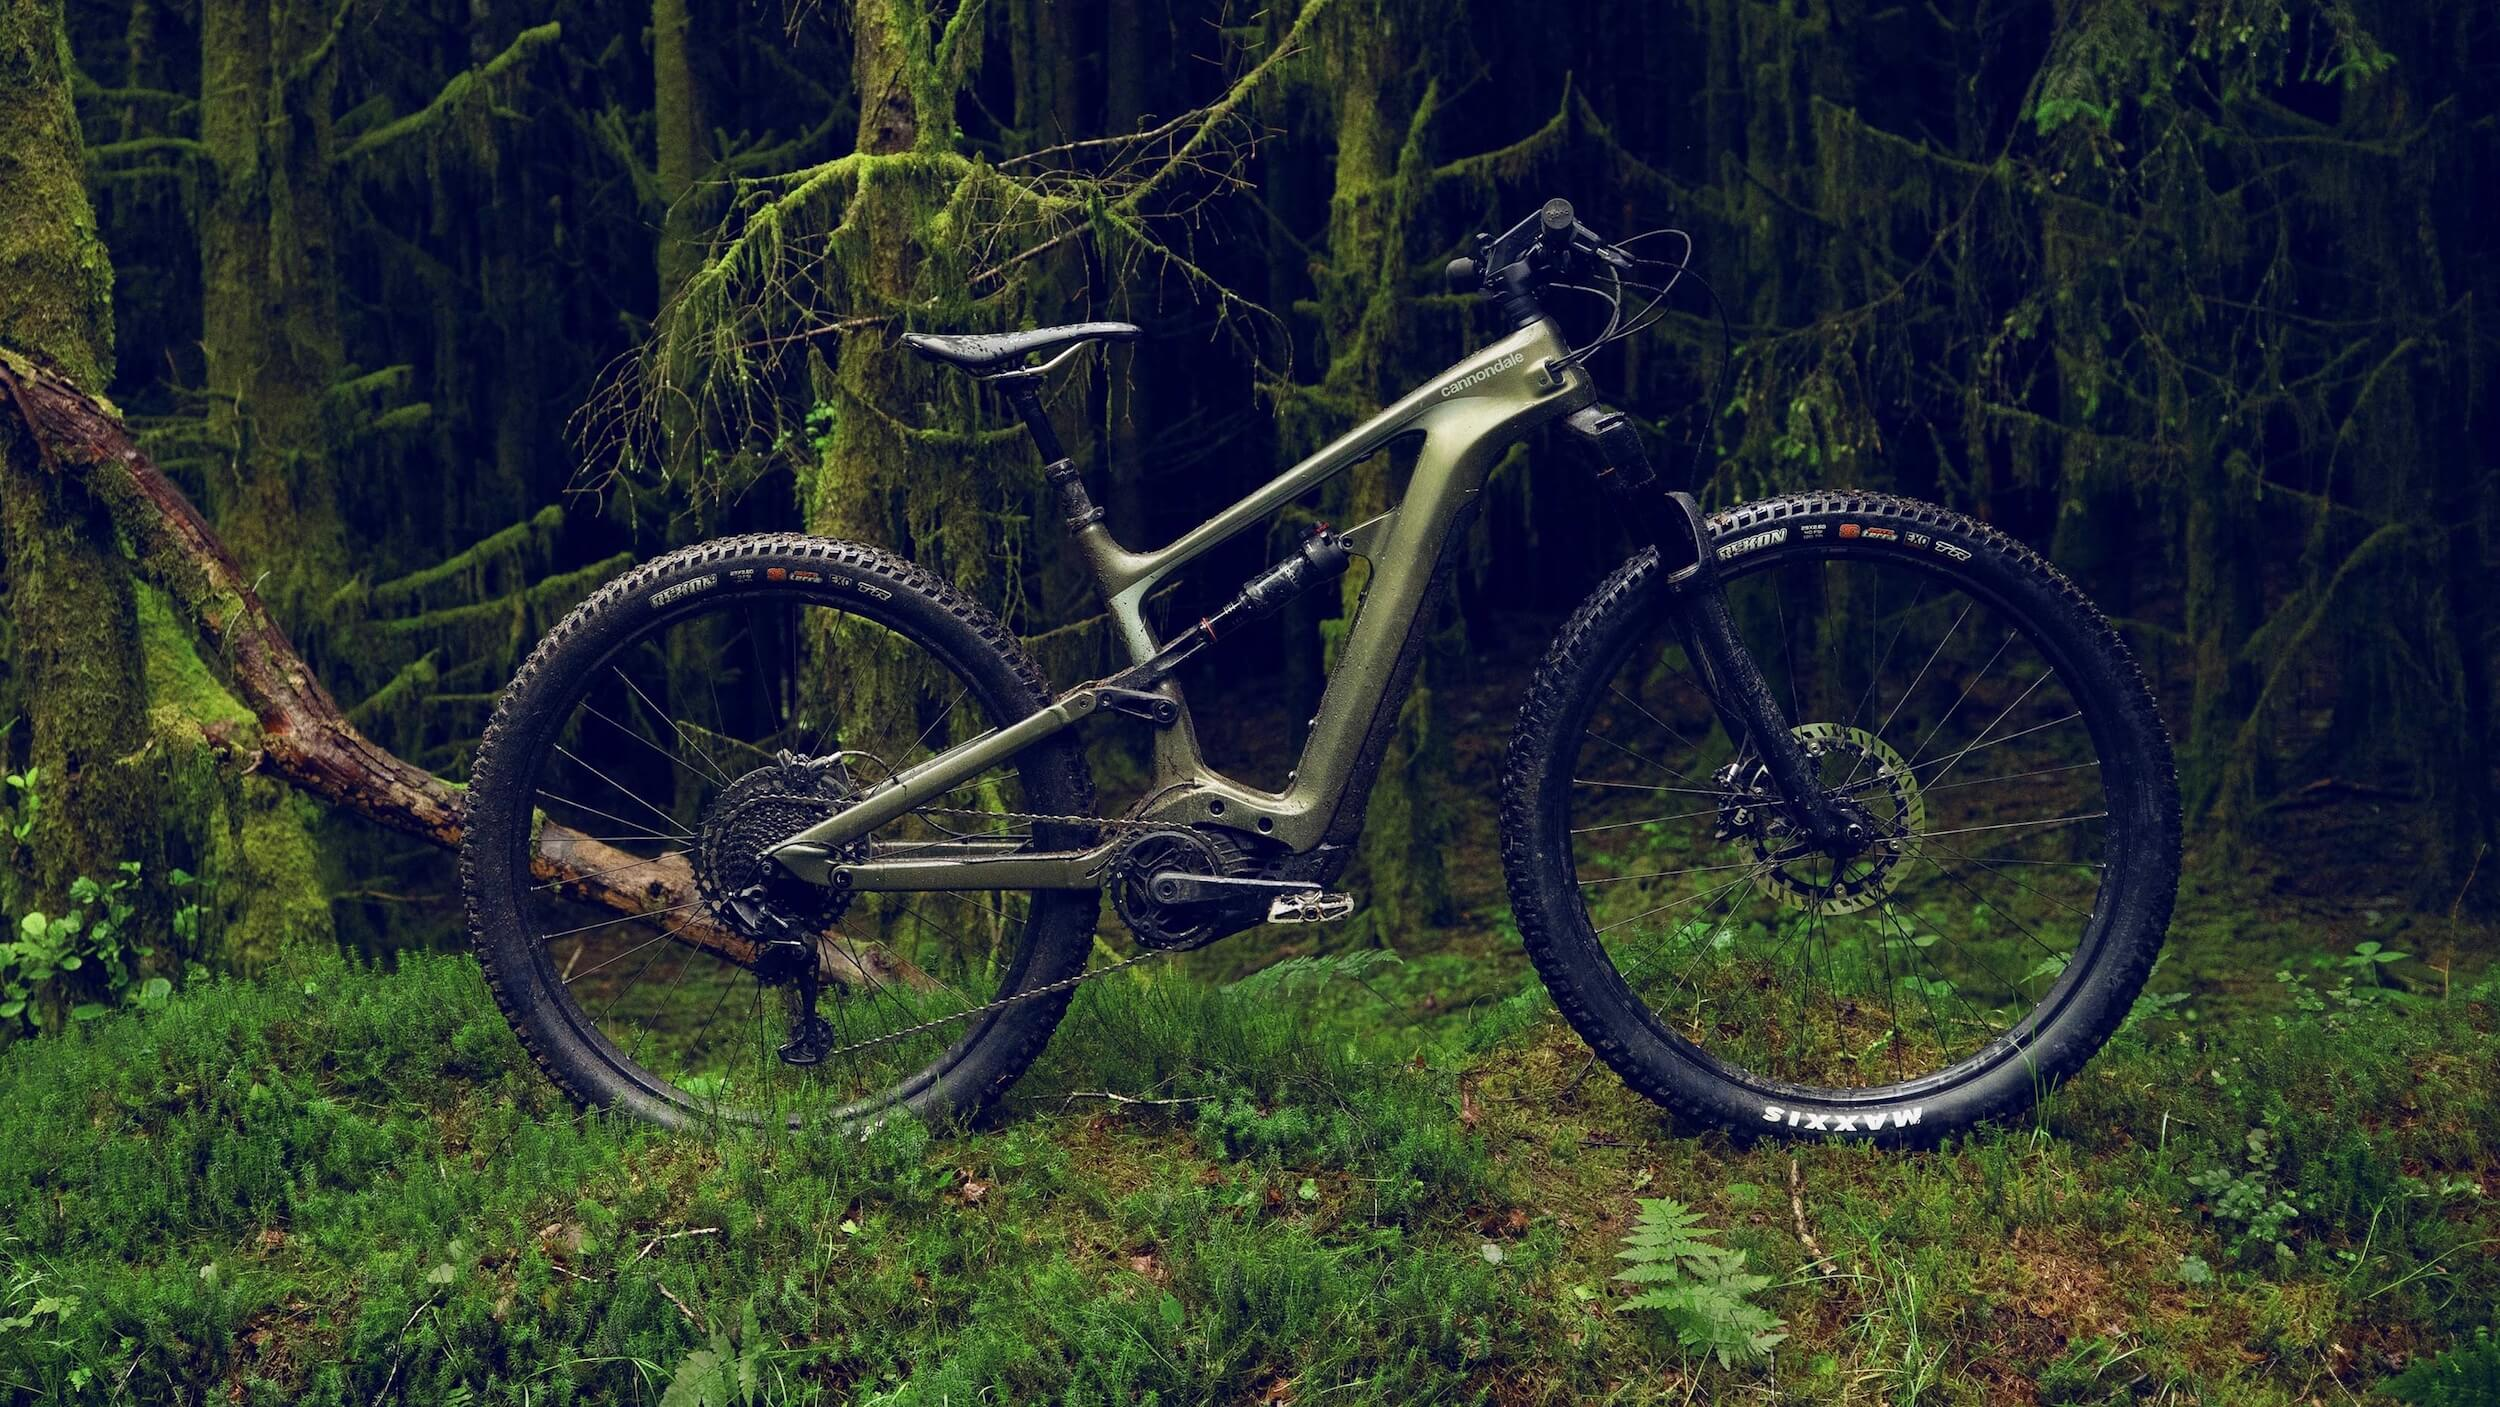 Cannondale Habit Neo elektrische mountainbike